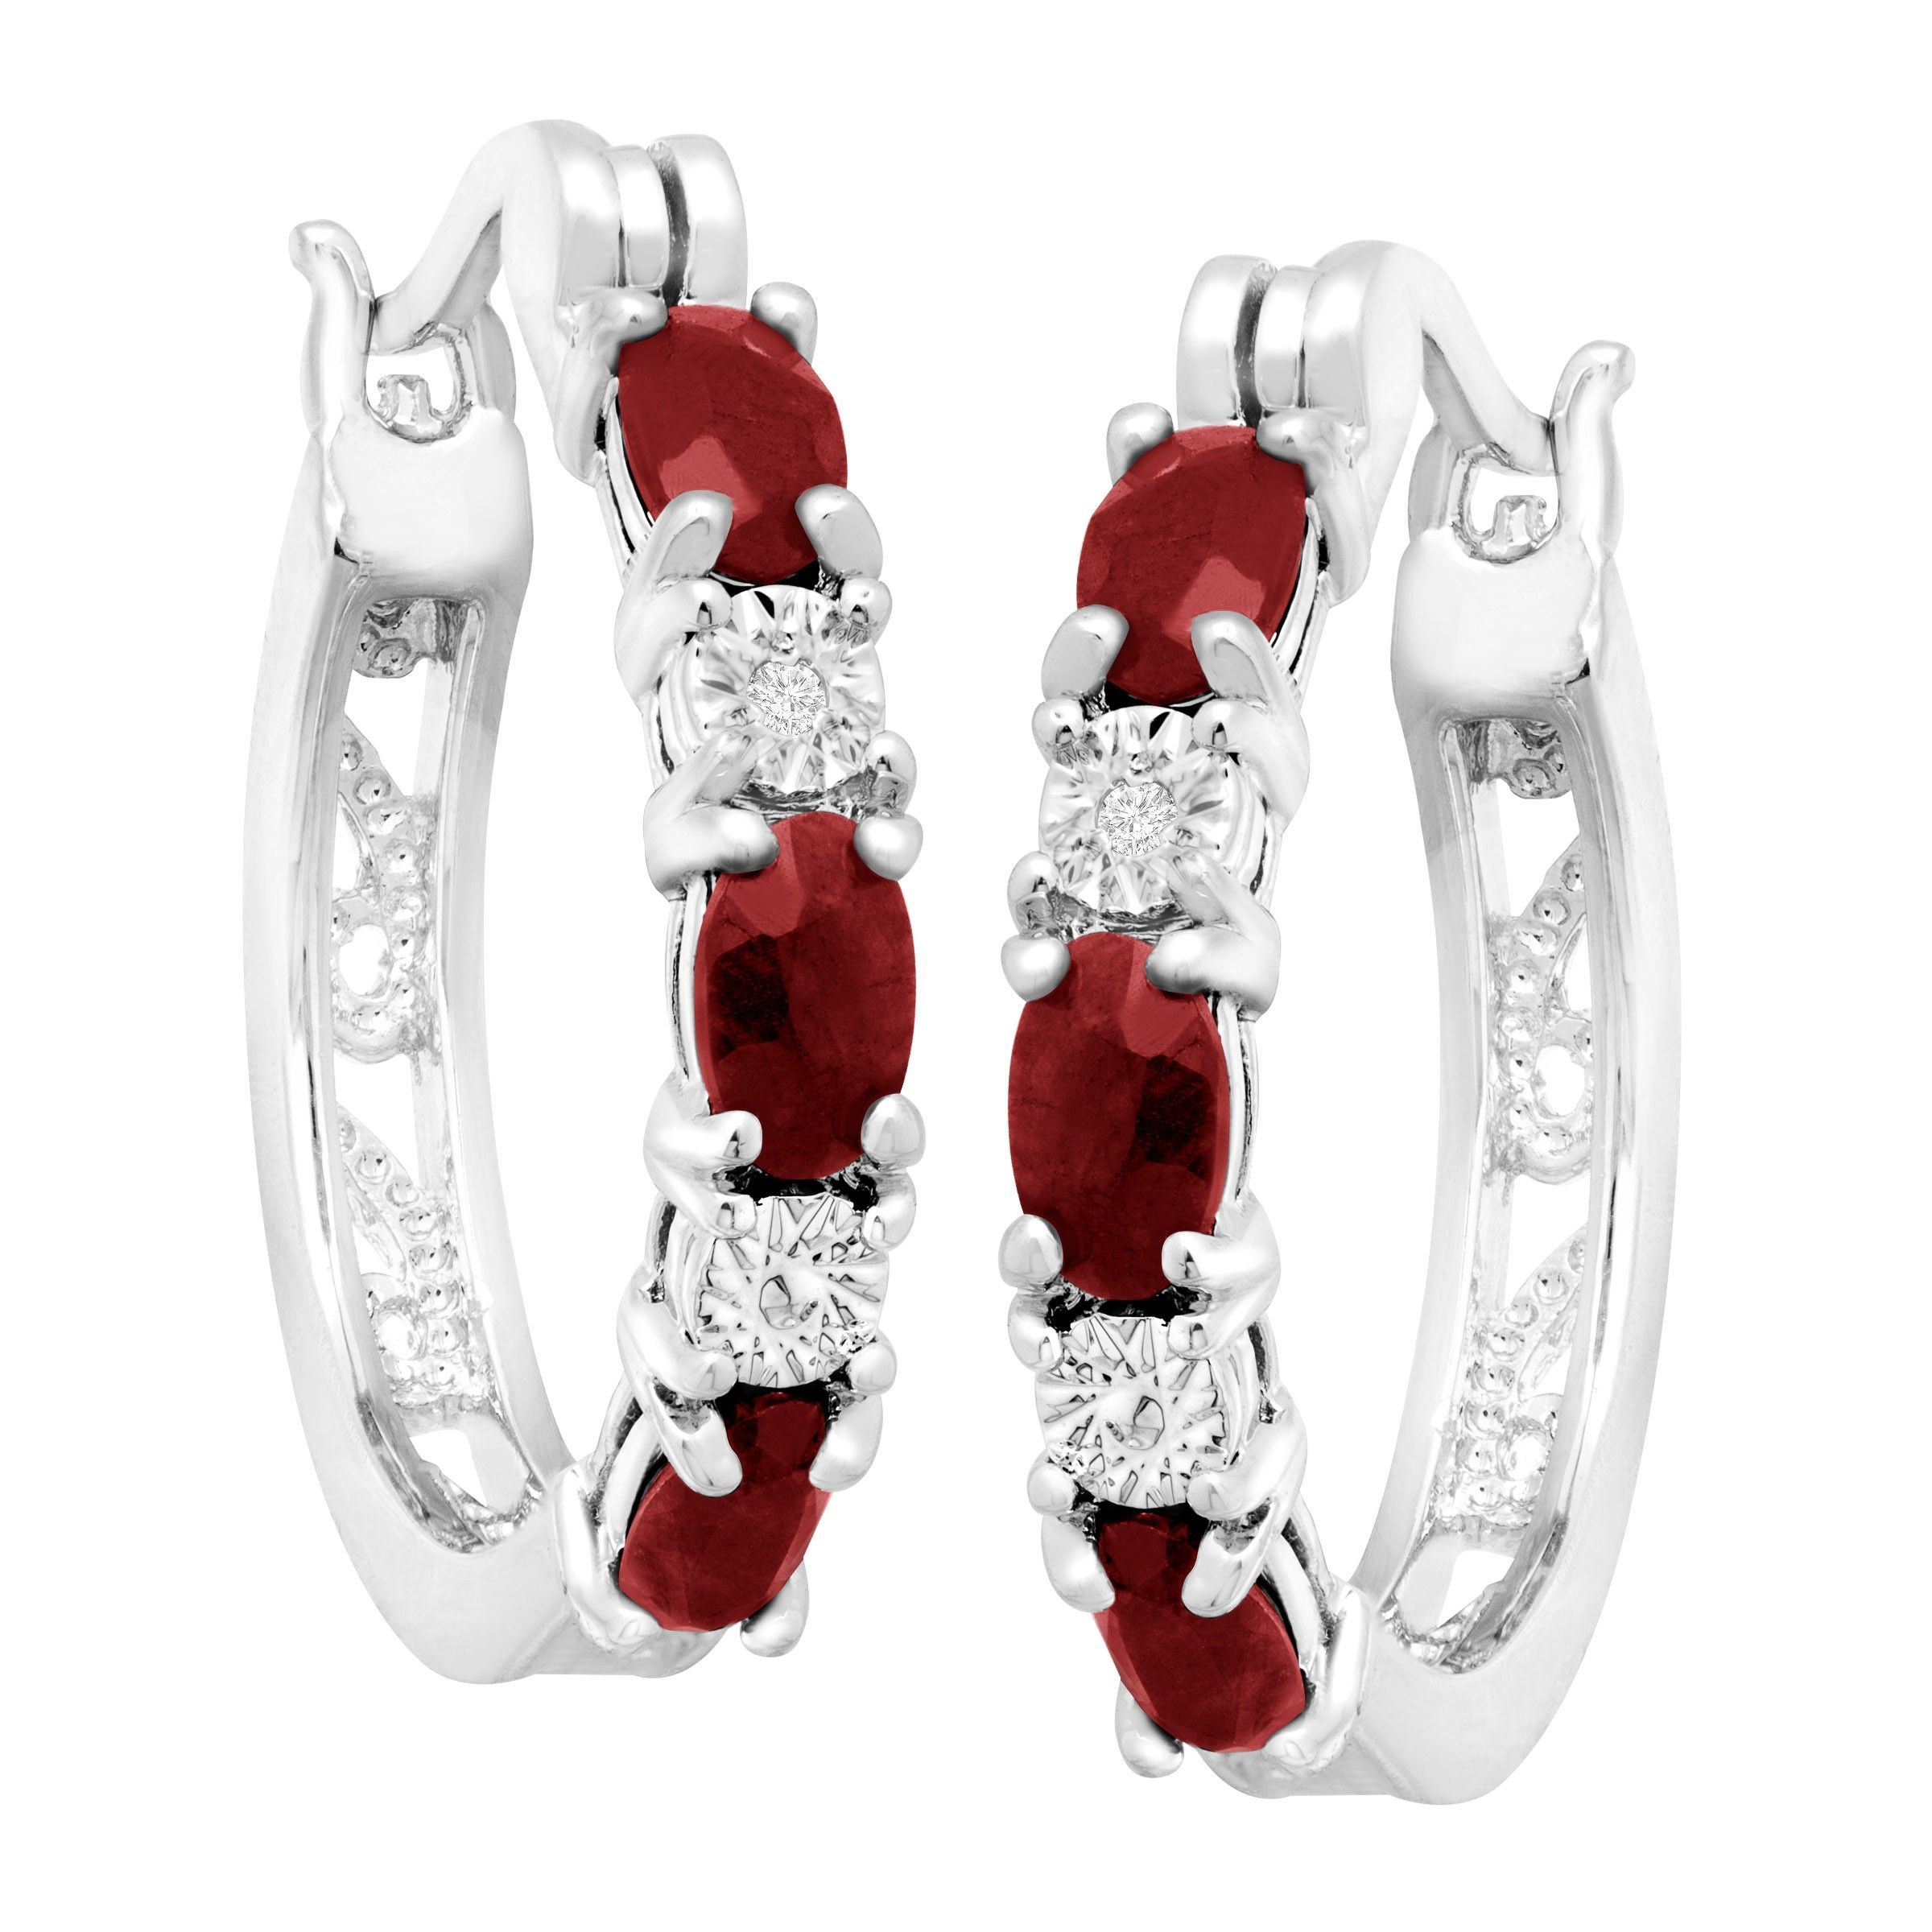 Gemstone-Hoop-Earrings-with-Diamonds-in-Platinum-Plated-Brass thumbnail 27